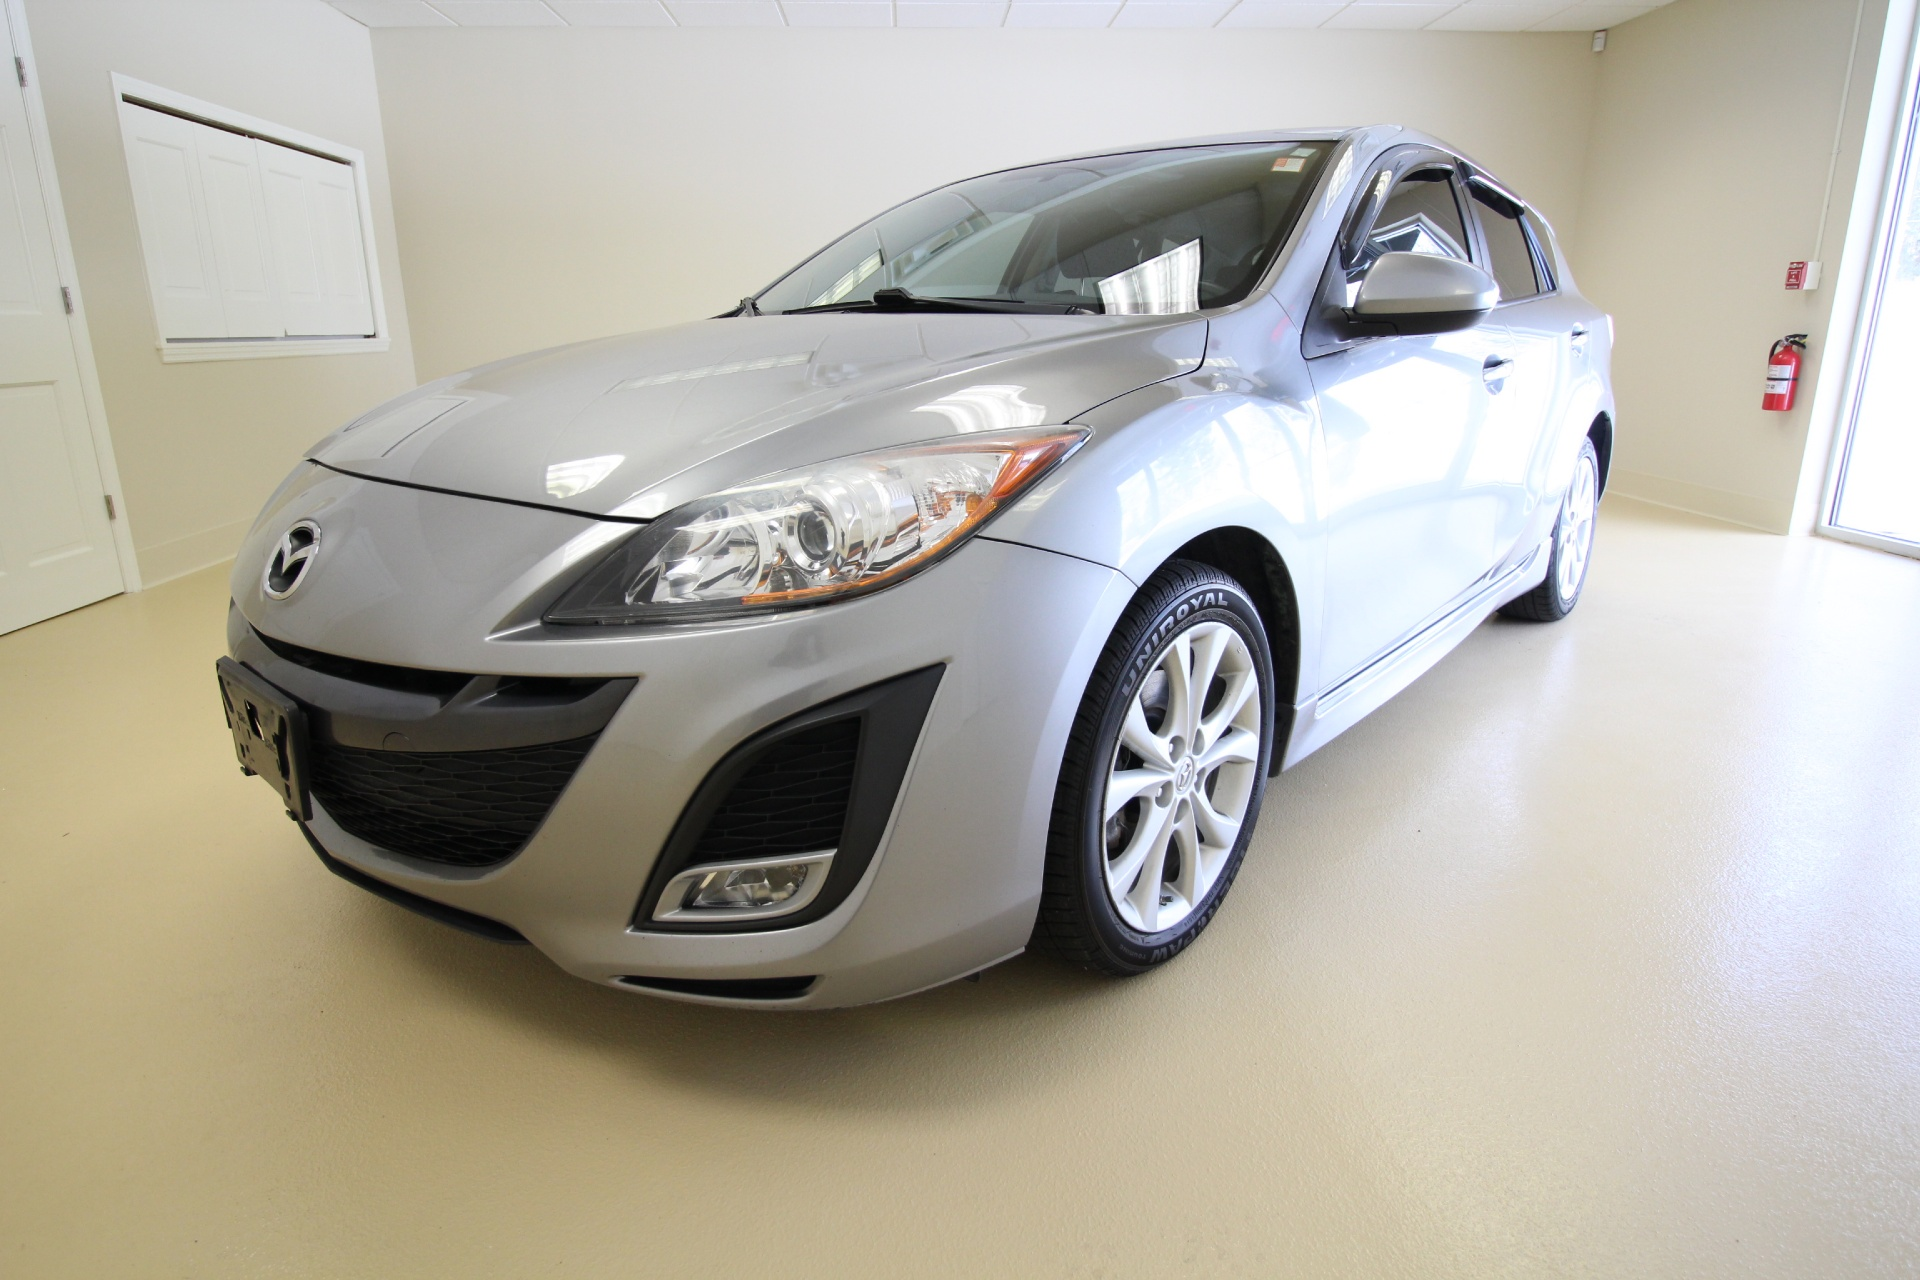 2010 mazda mazda3 s sport rare 6 speed manual navigation sunroof stock 16016 for sale near. Black Bedroom Furniture Sets. Home Design Ideas